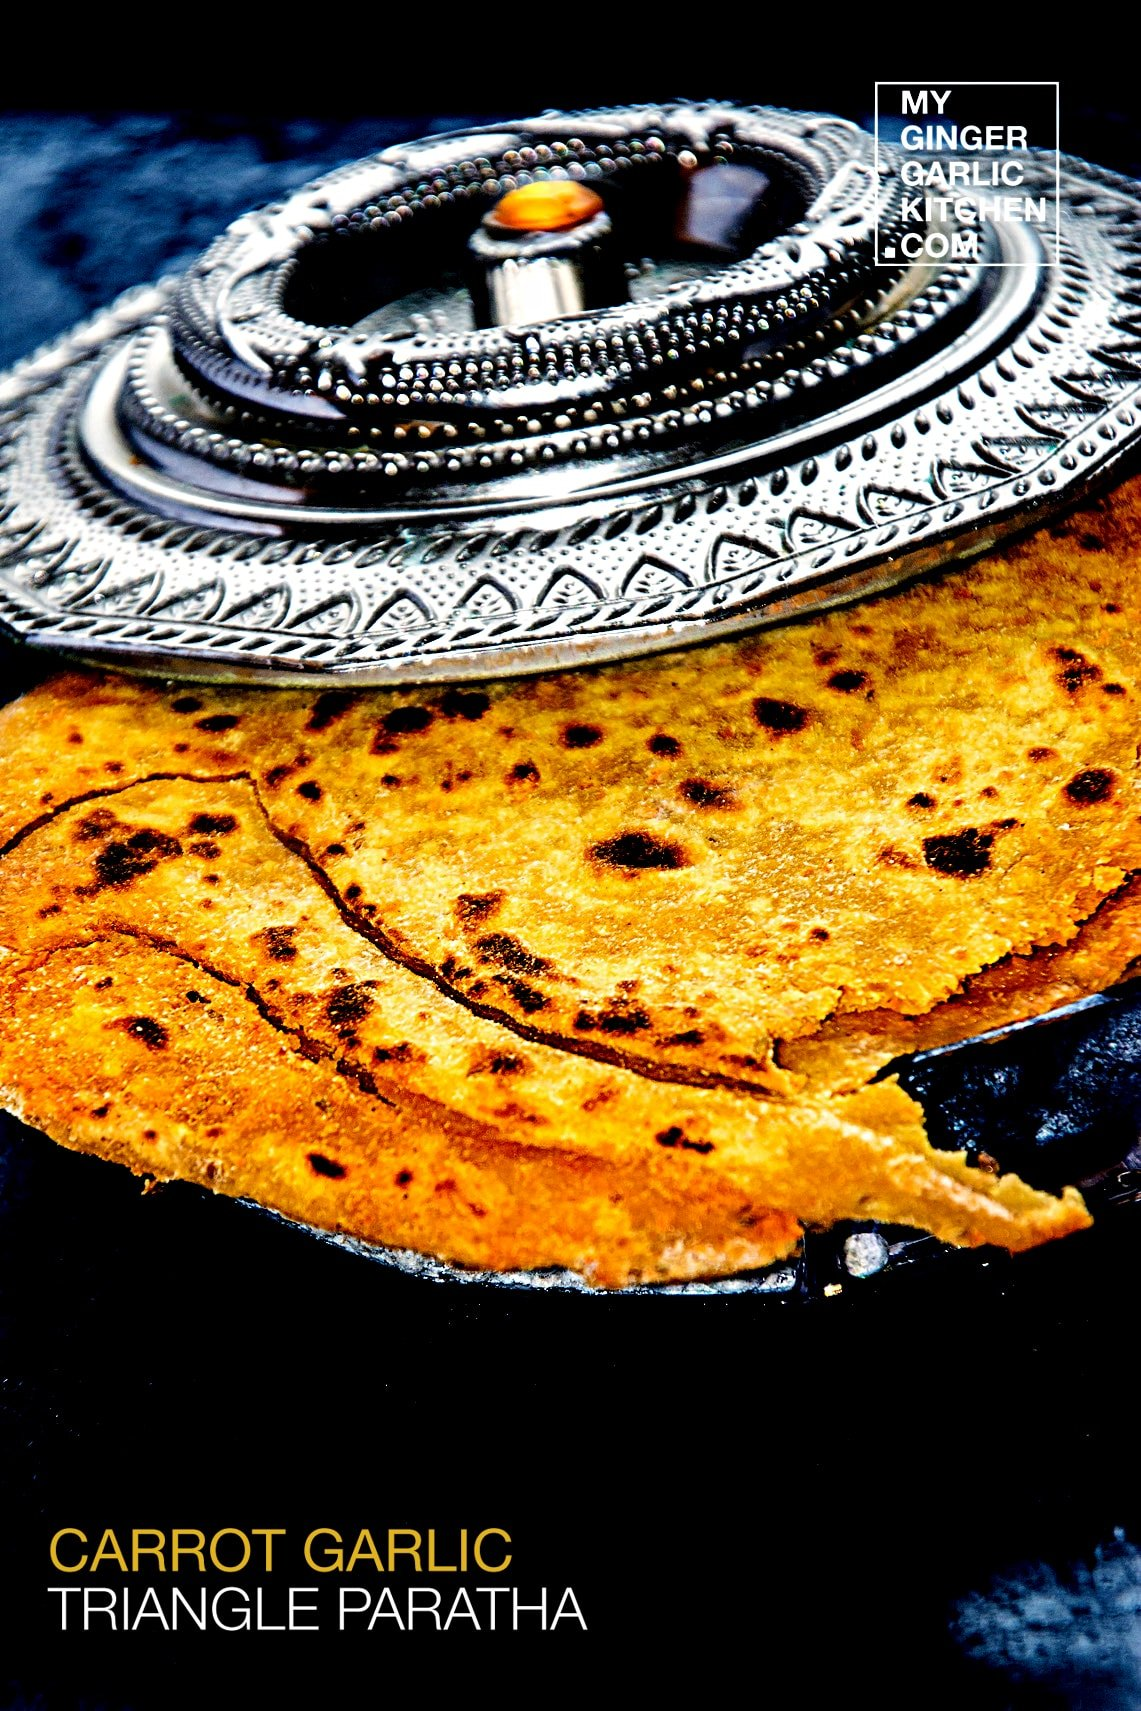 Image of Carrot Garlic Triangle Paratha – Carrot garlic Flatbread